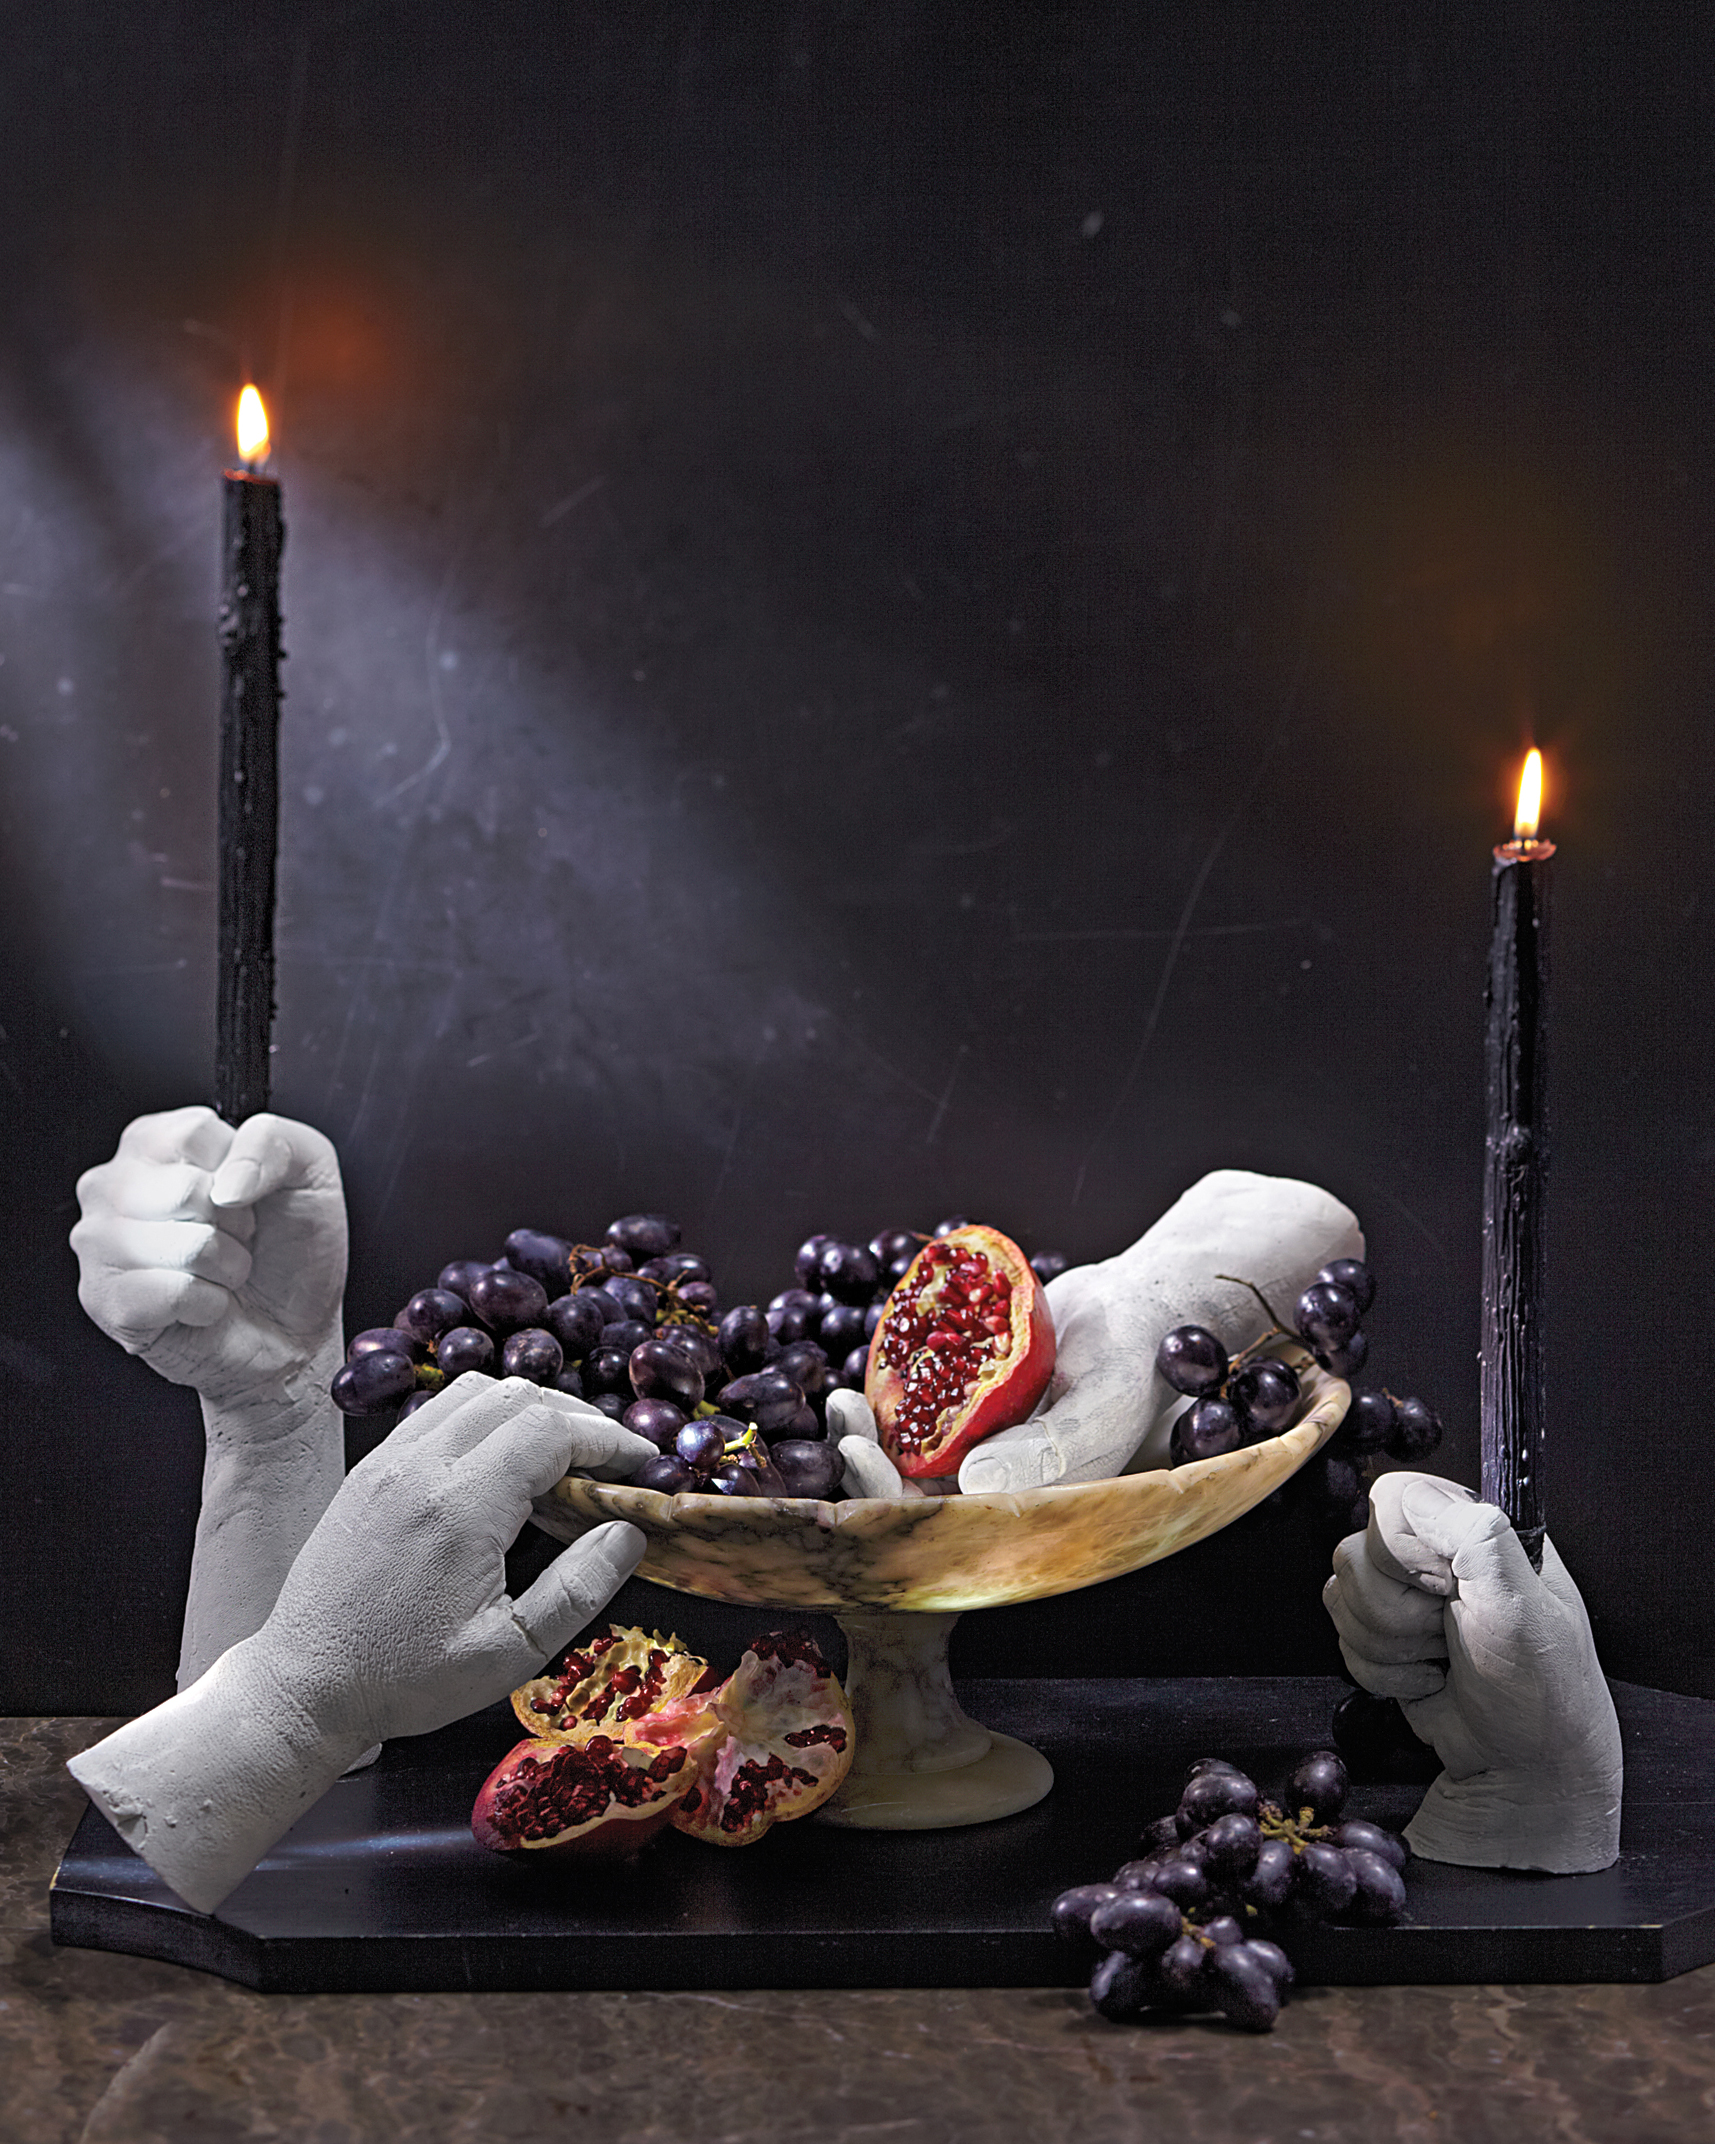 On Halloween, consider taking your fear in hand and making five-fingered candleholders and tabletop decorations.